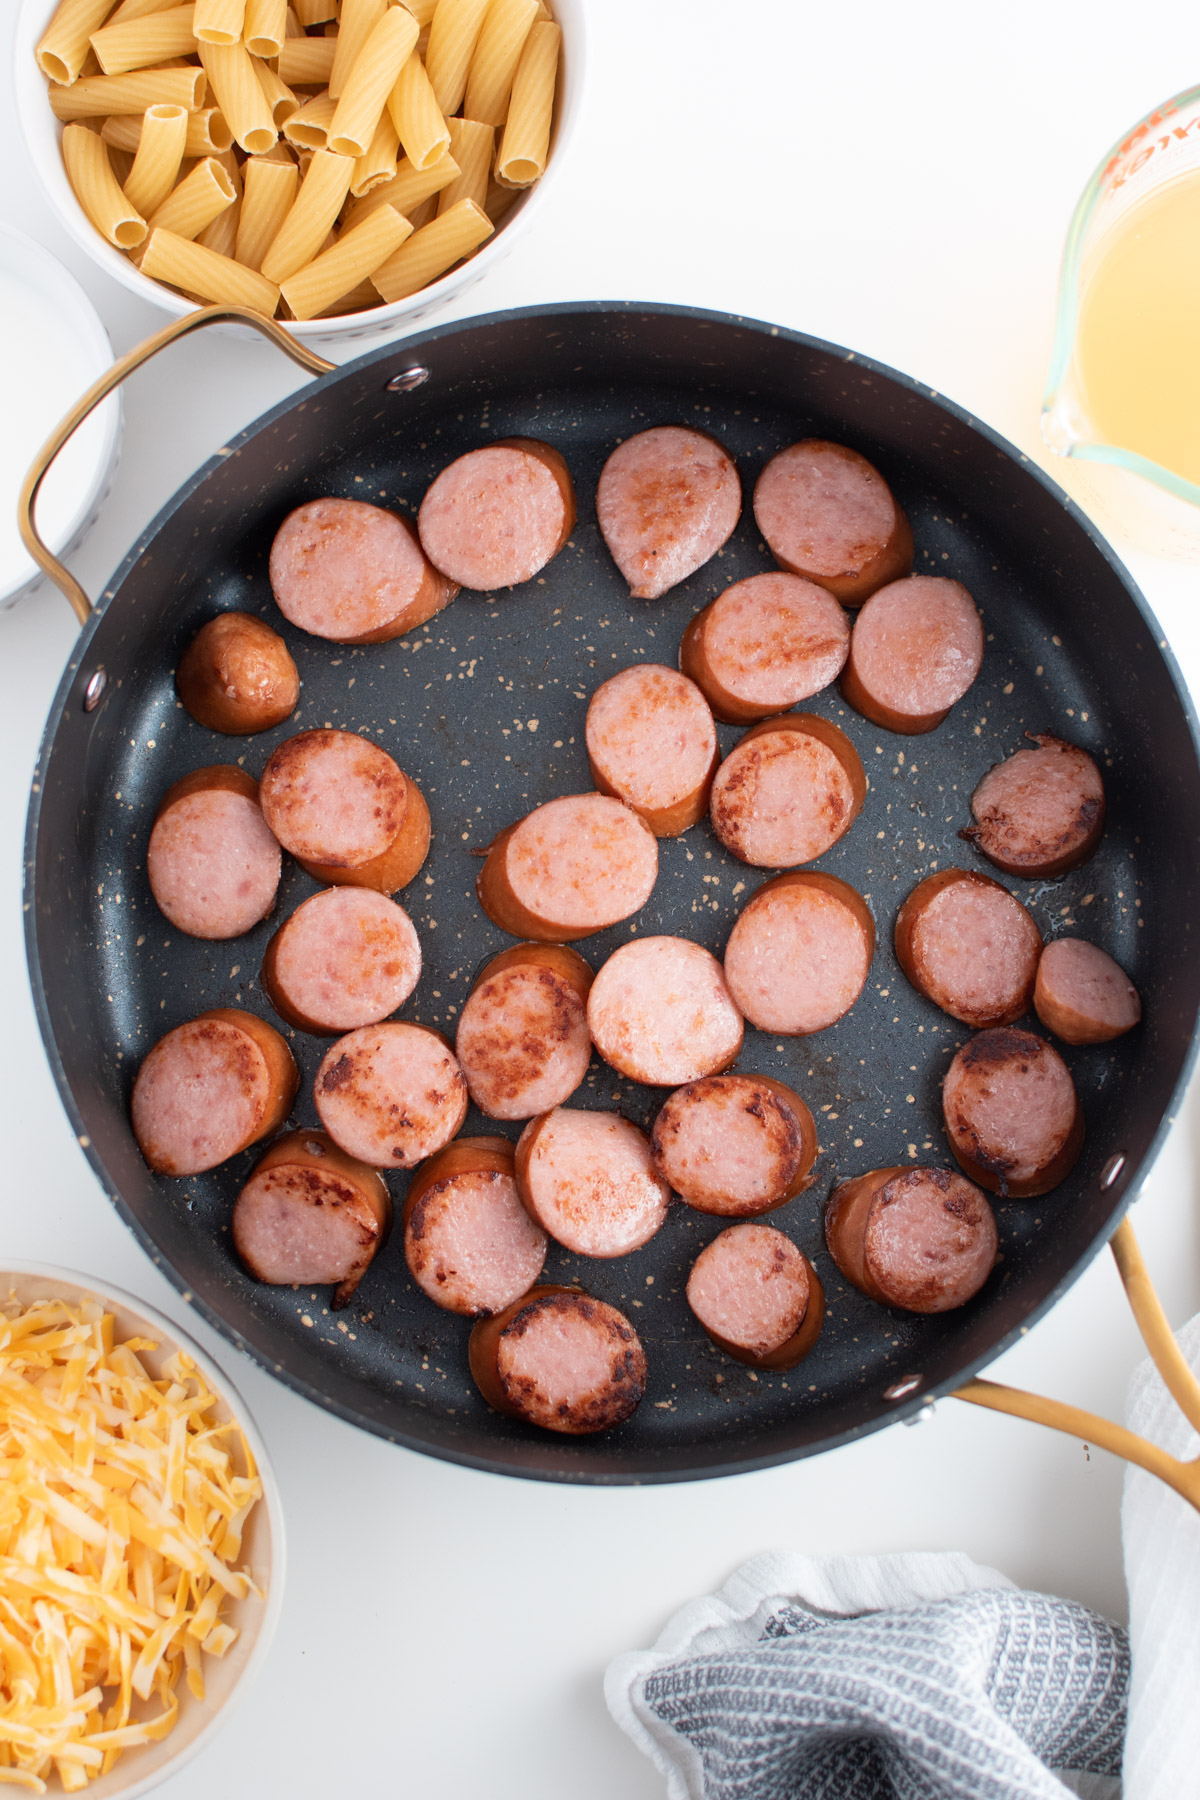 Browned kielbasa in black speckled skillet with bowls of cheese and uncooked noodles surrounding.